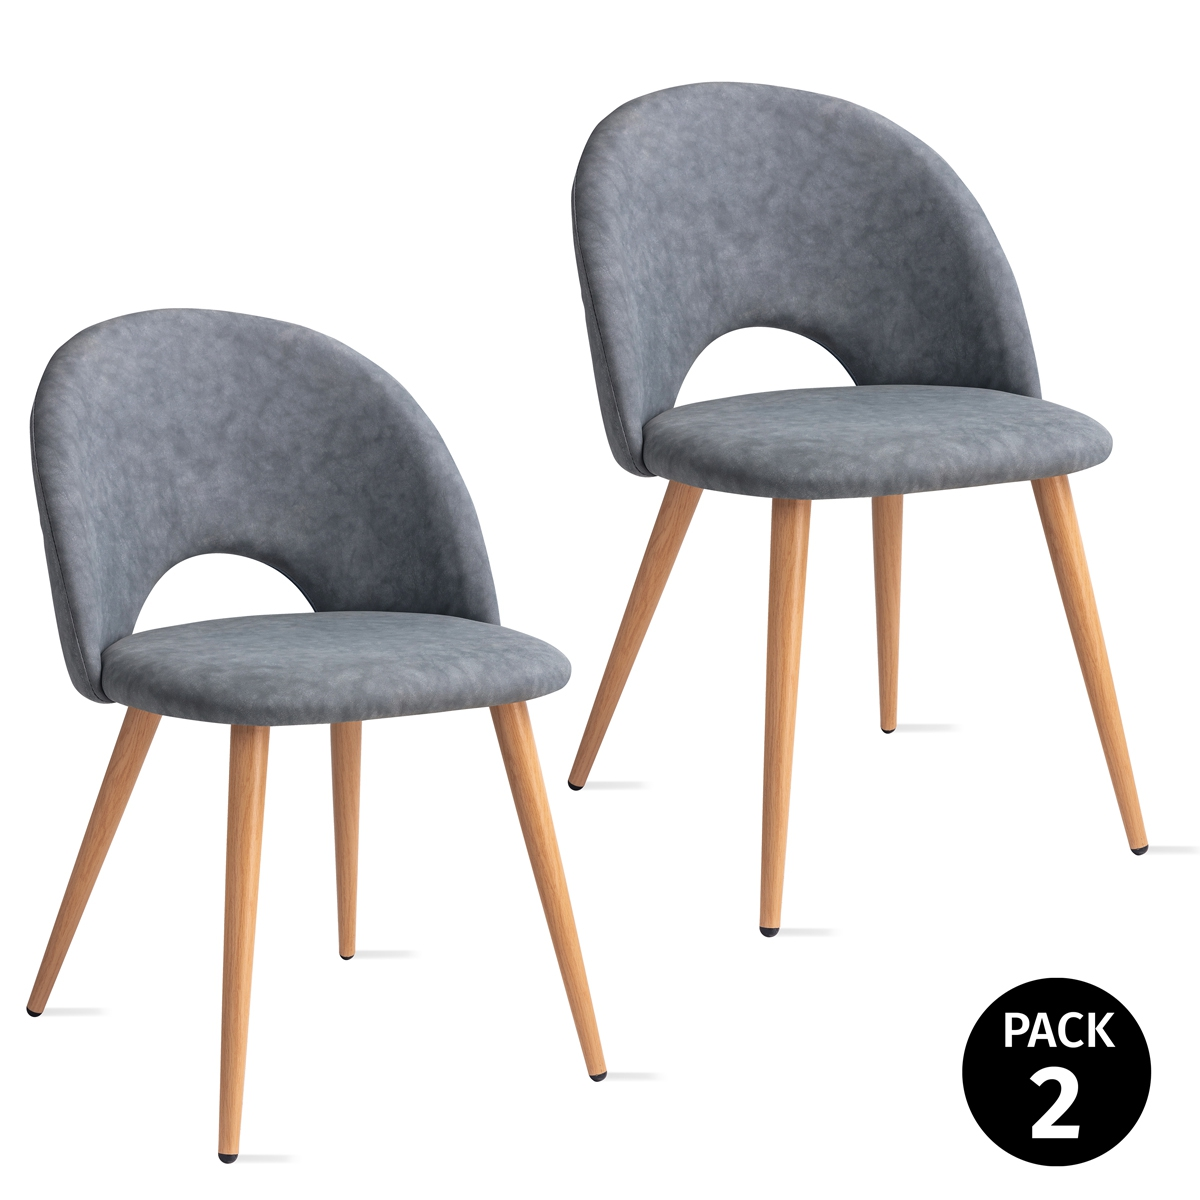 Pack 2 Sillas De Dining Room Nordicas Synthetic Leather Overlay Grey, Seats And Armchairs For Living Topsy Metal Effect Wood 49x46x76cm